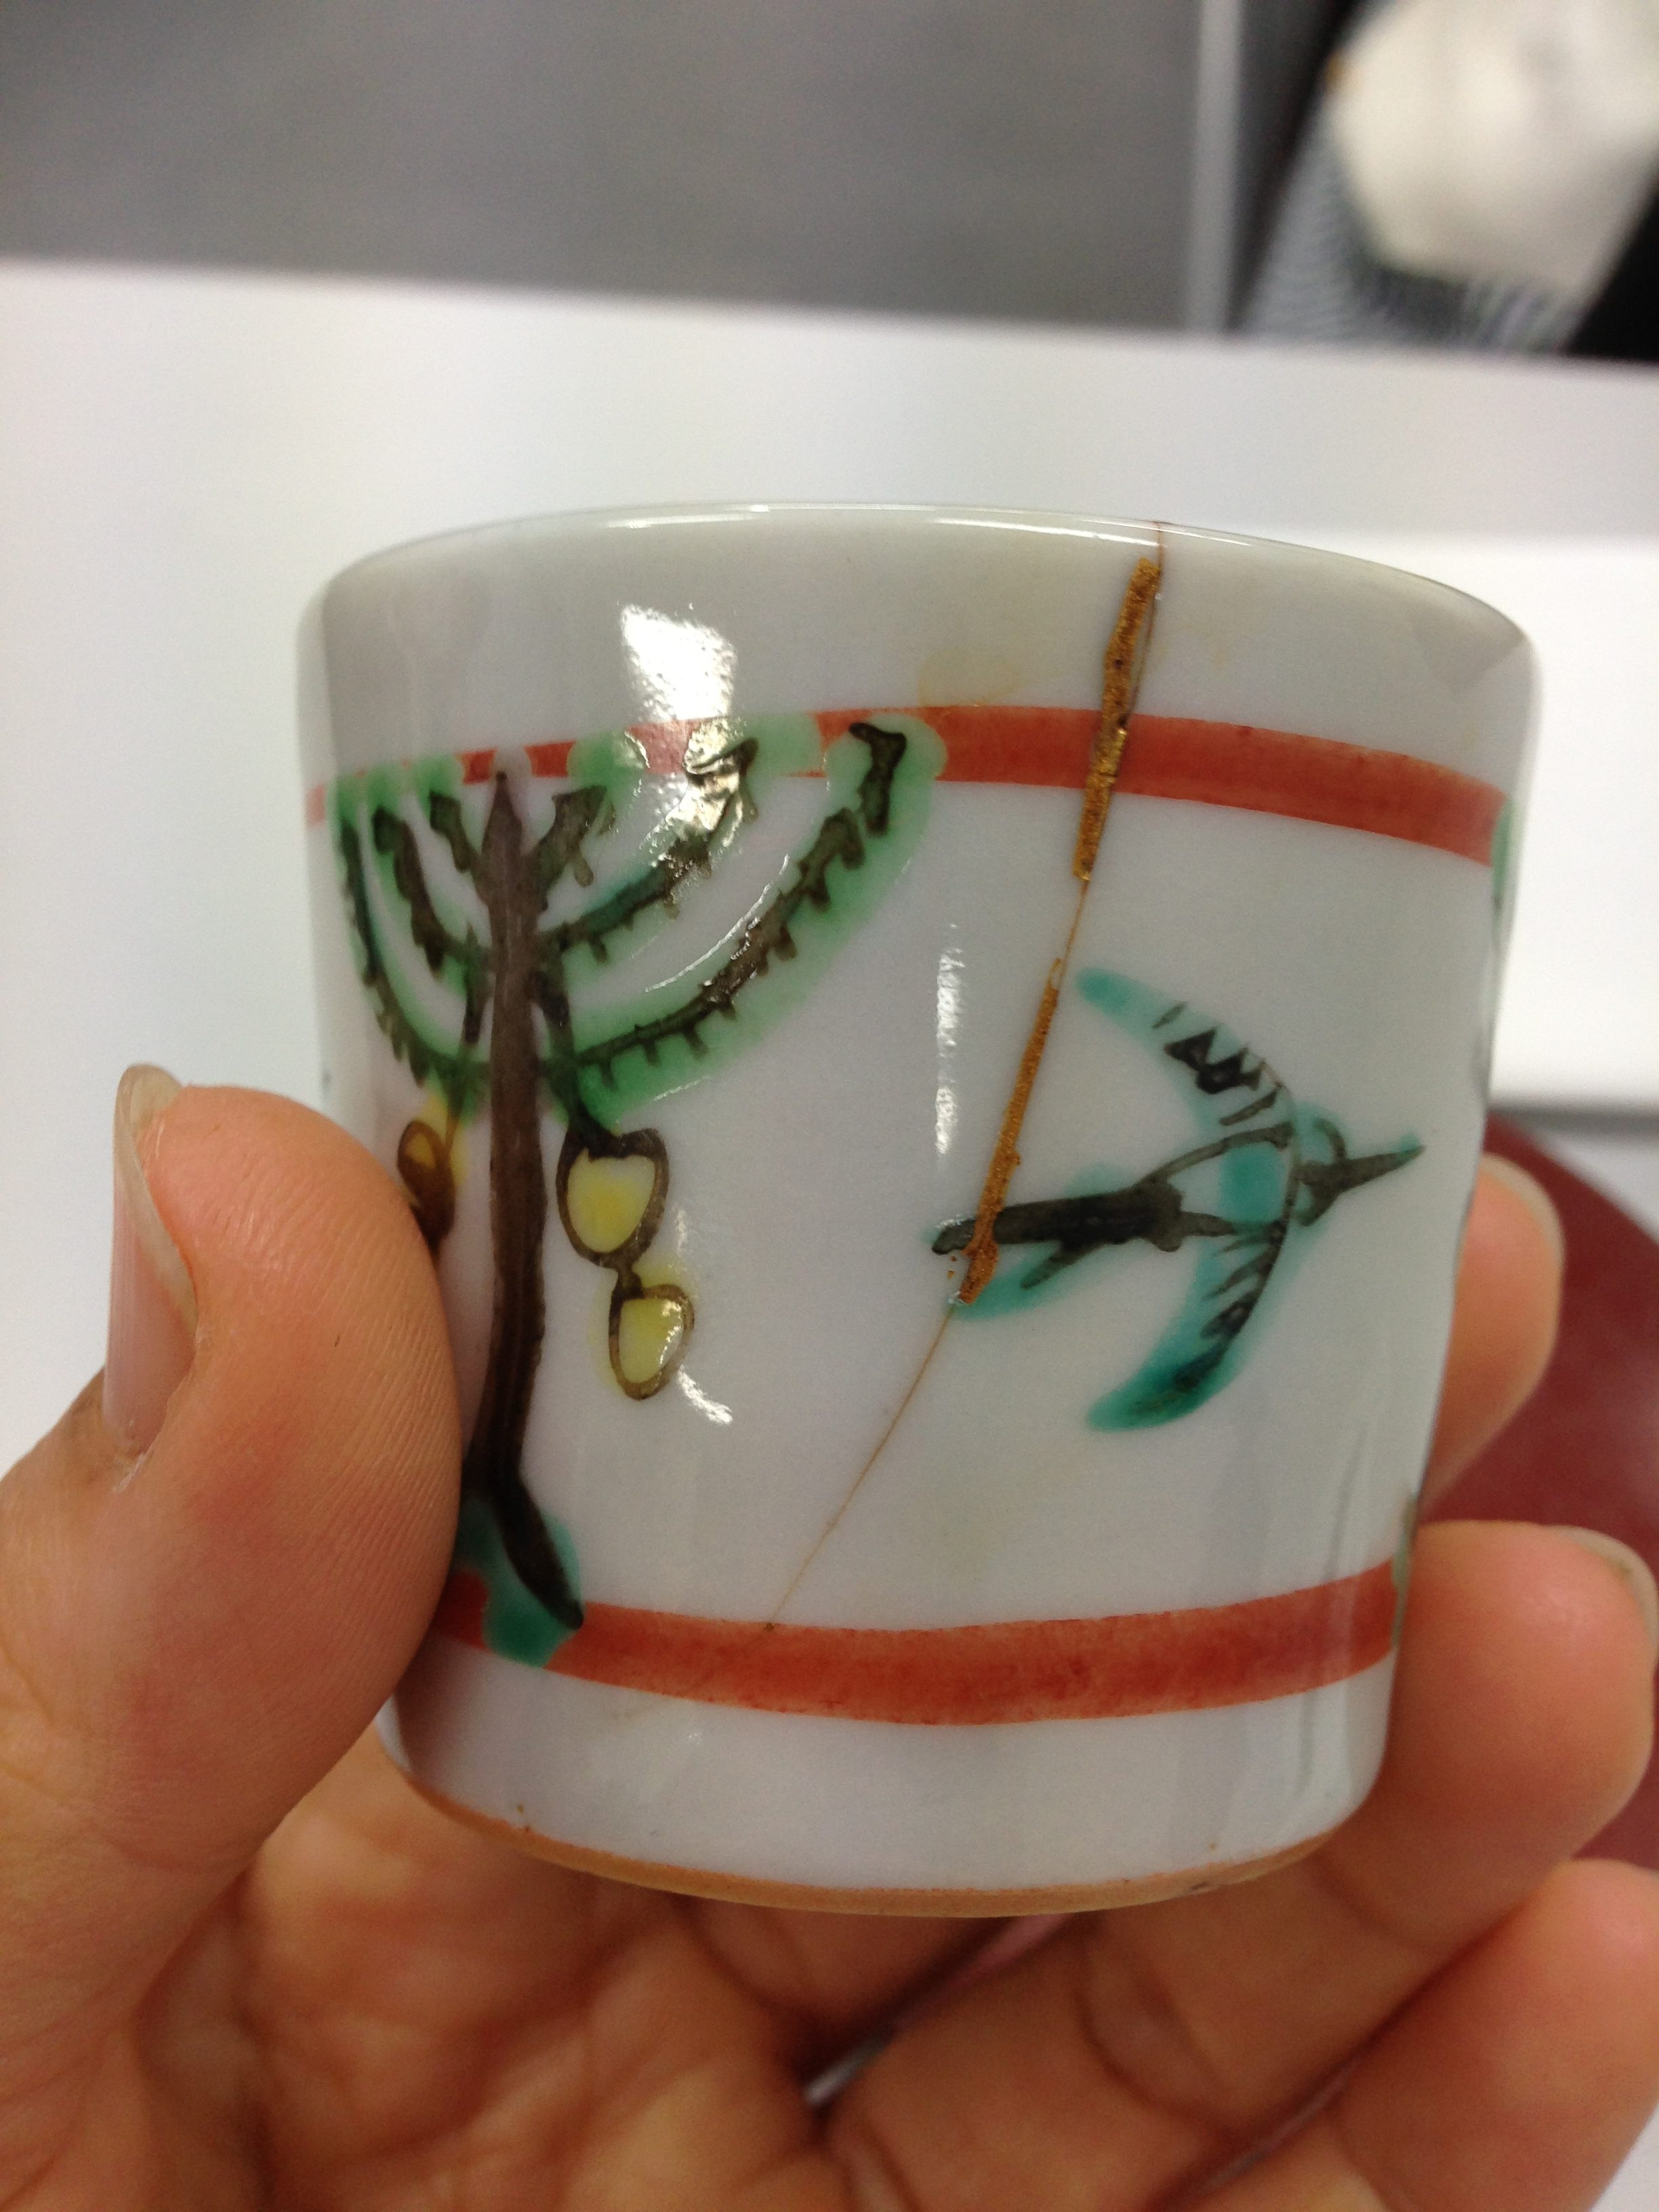 A Japanese cup reinforced with gold